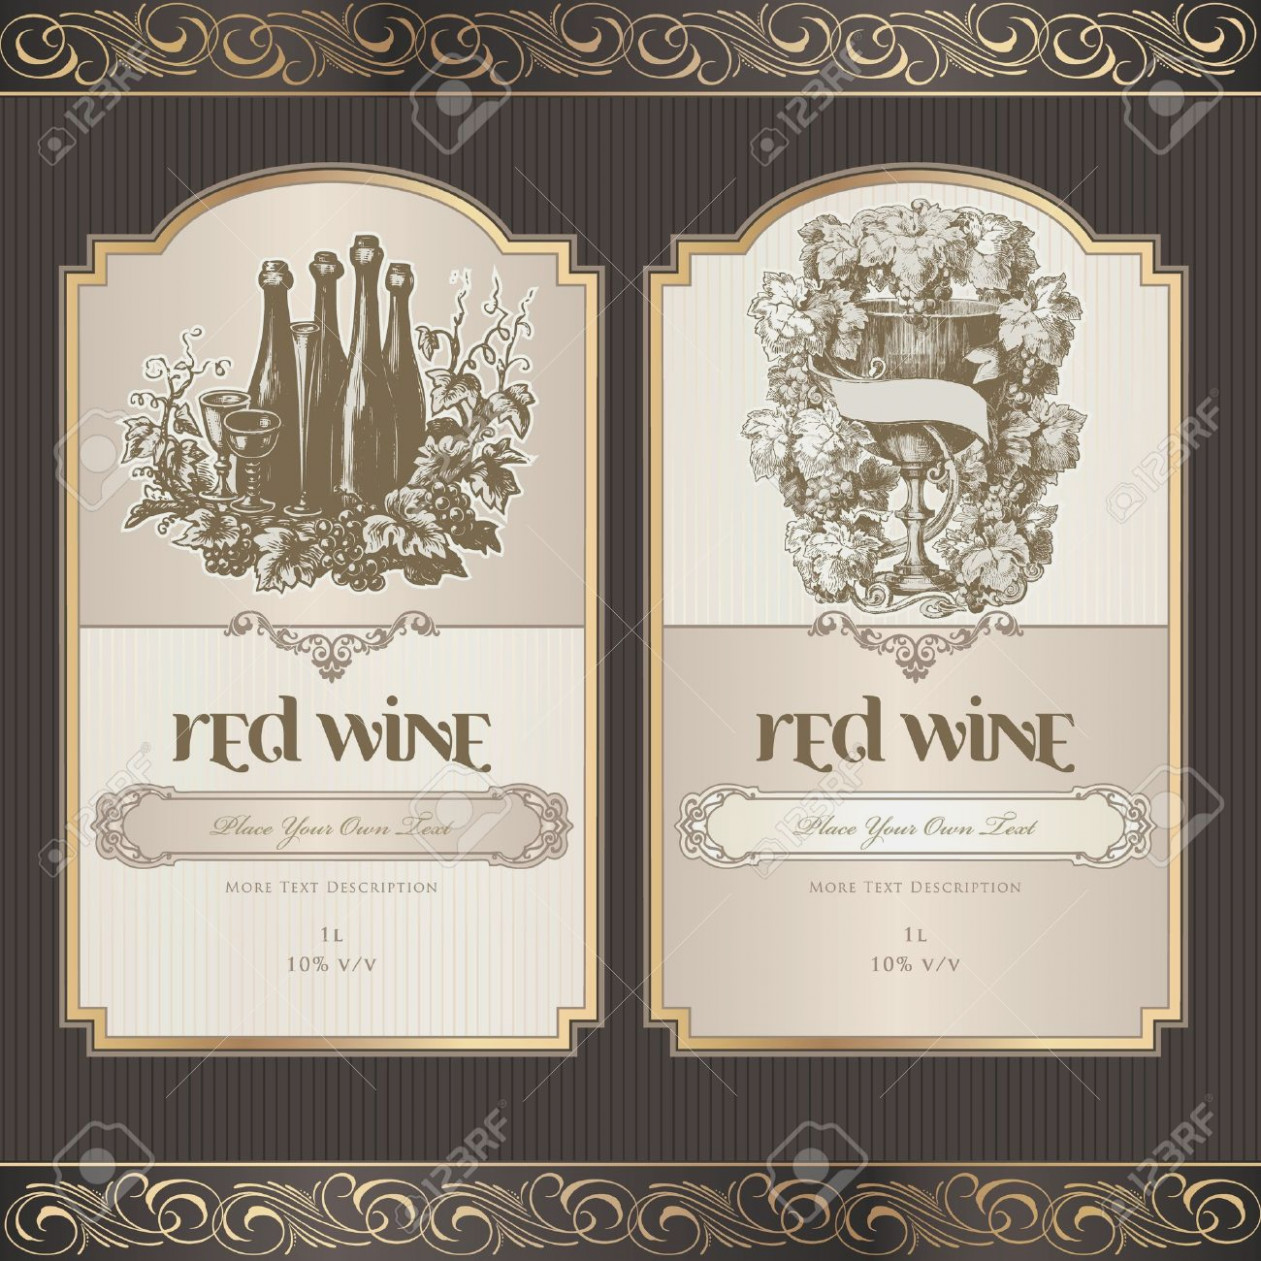 Downloadable Free Wine Label Template